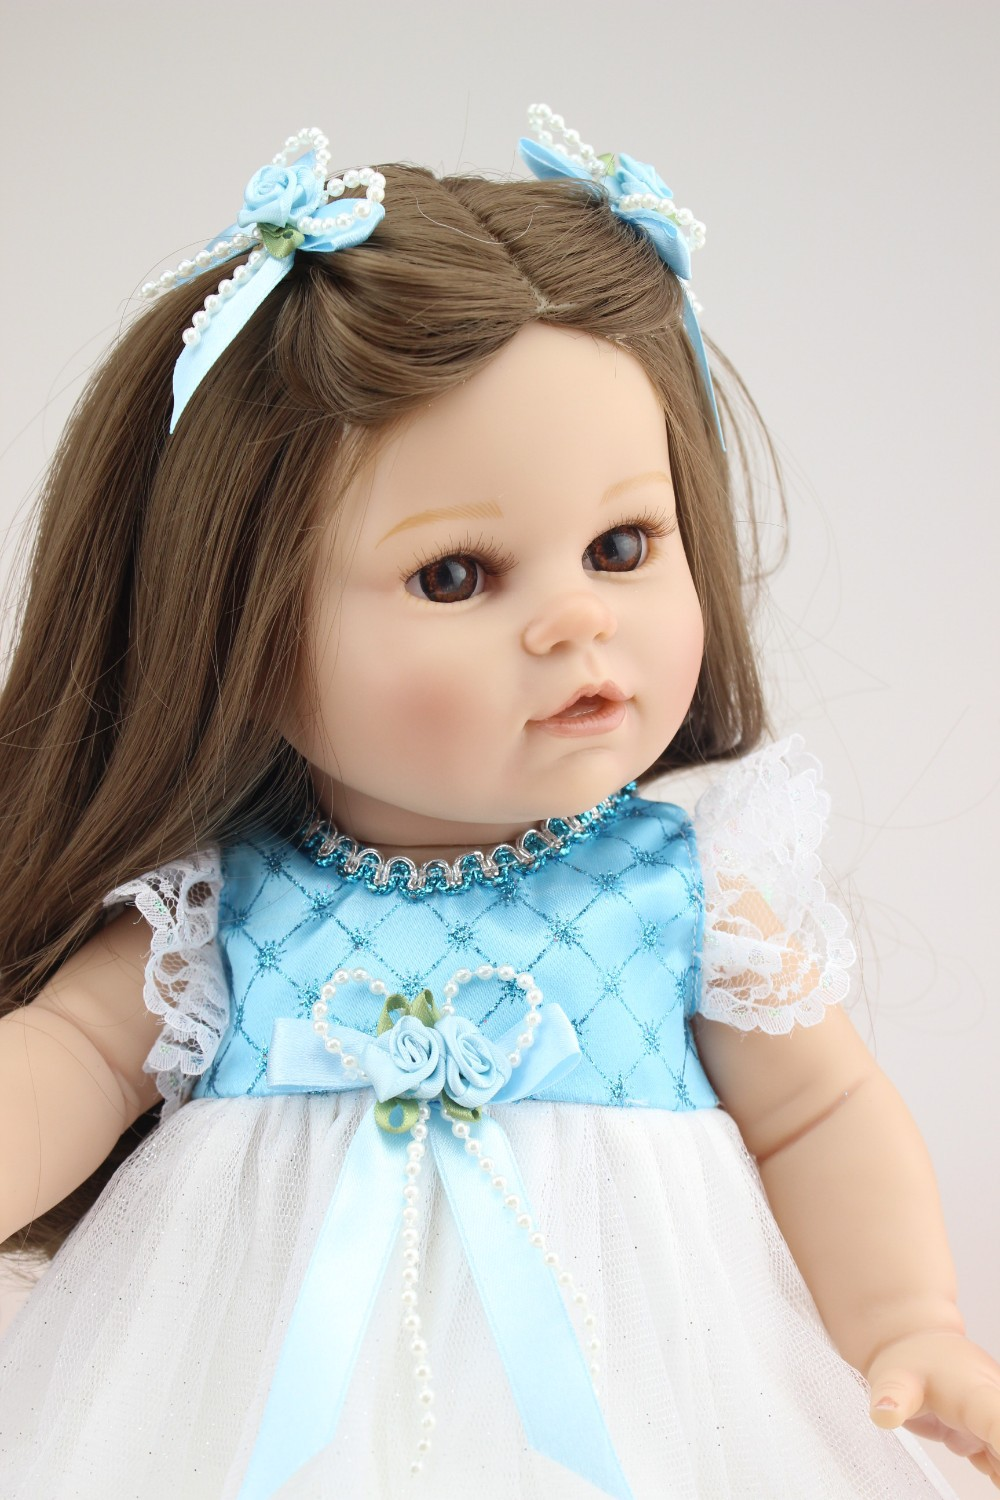 2015 NEW design free shipping 16inches American girl doll blue dress Dollie& me fashion doll Our generation original 652508 001 for hp elitebook 8760w laptop motherboard 652508 001 qm67 gma hd3000100